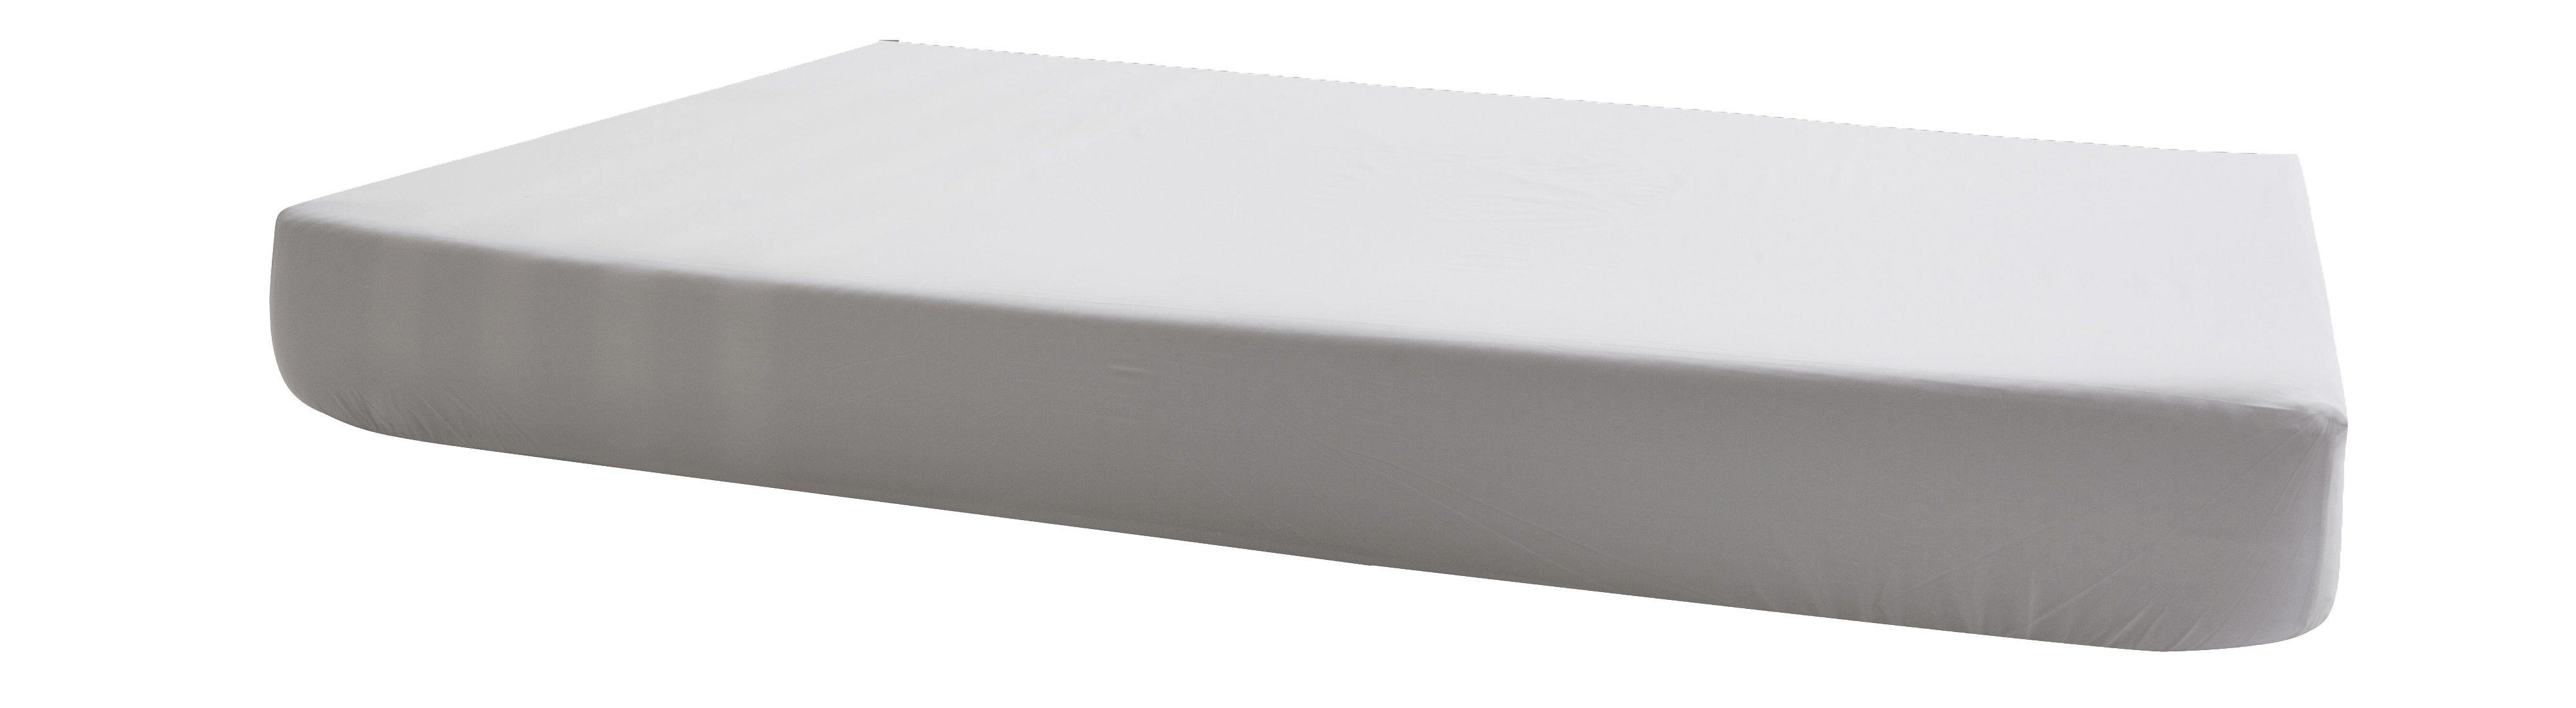 Click here for more information on our fitted sheets